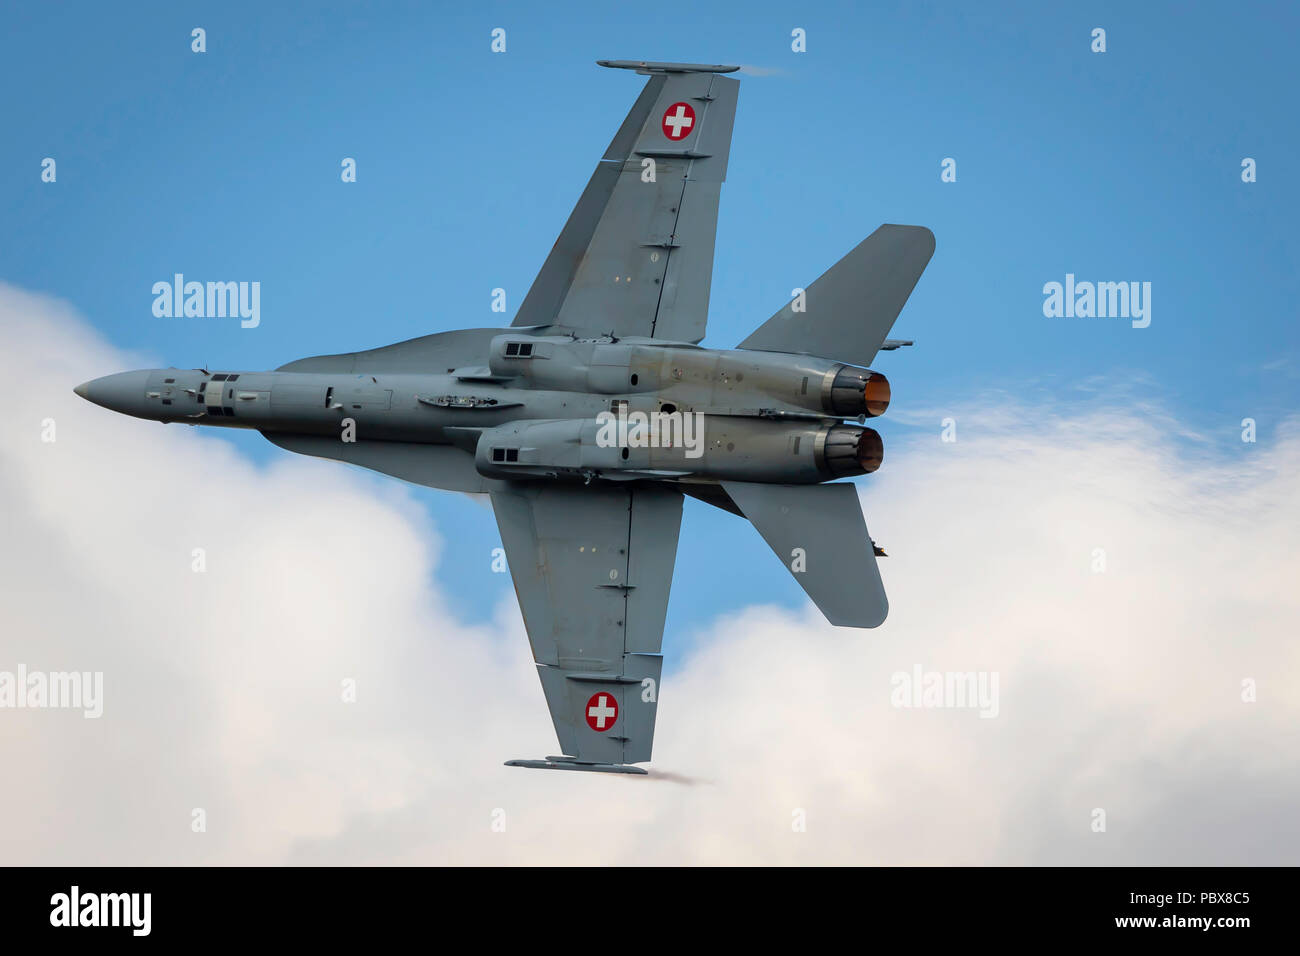 Fairford, Gloucestershire, UK - July 14th, 2018: Swiss Air Force Mcdonnell Douglas F/A-18 Hornet performing its Aerobatic Display at RIAT 2018 - Stock Image